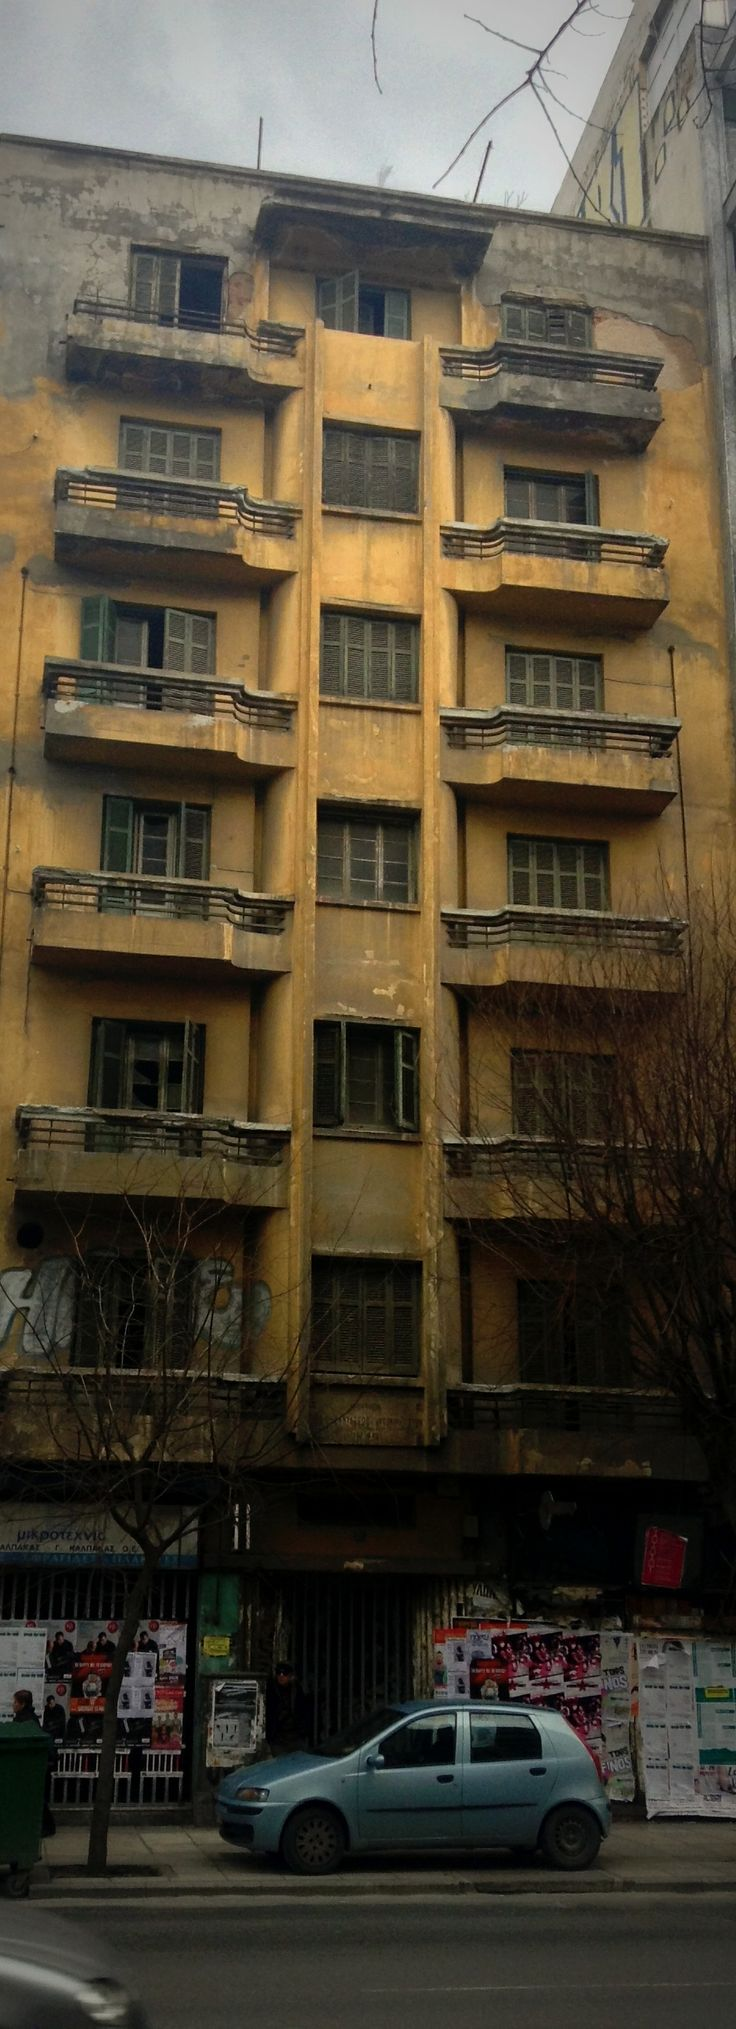 Old apartment block or hotel on Egnatia str., Thessaloniki.